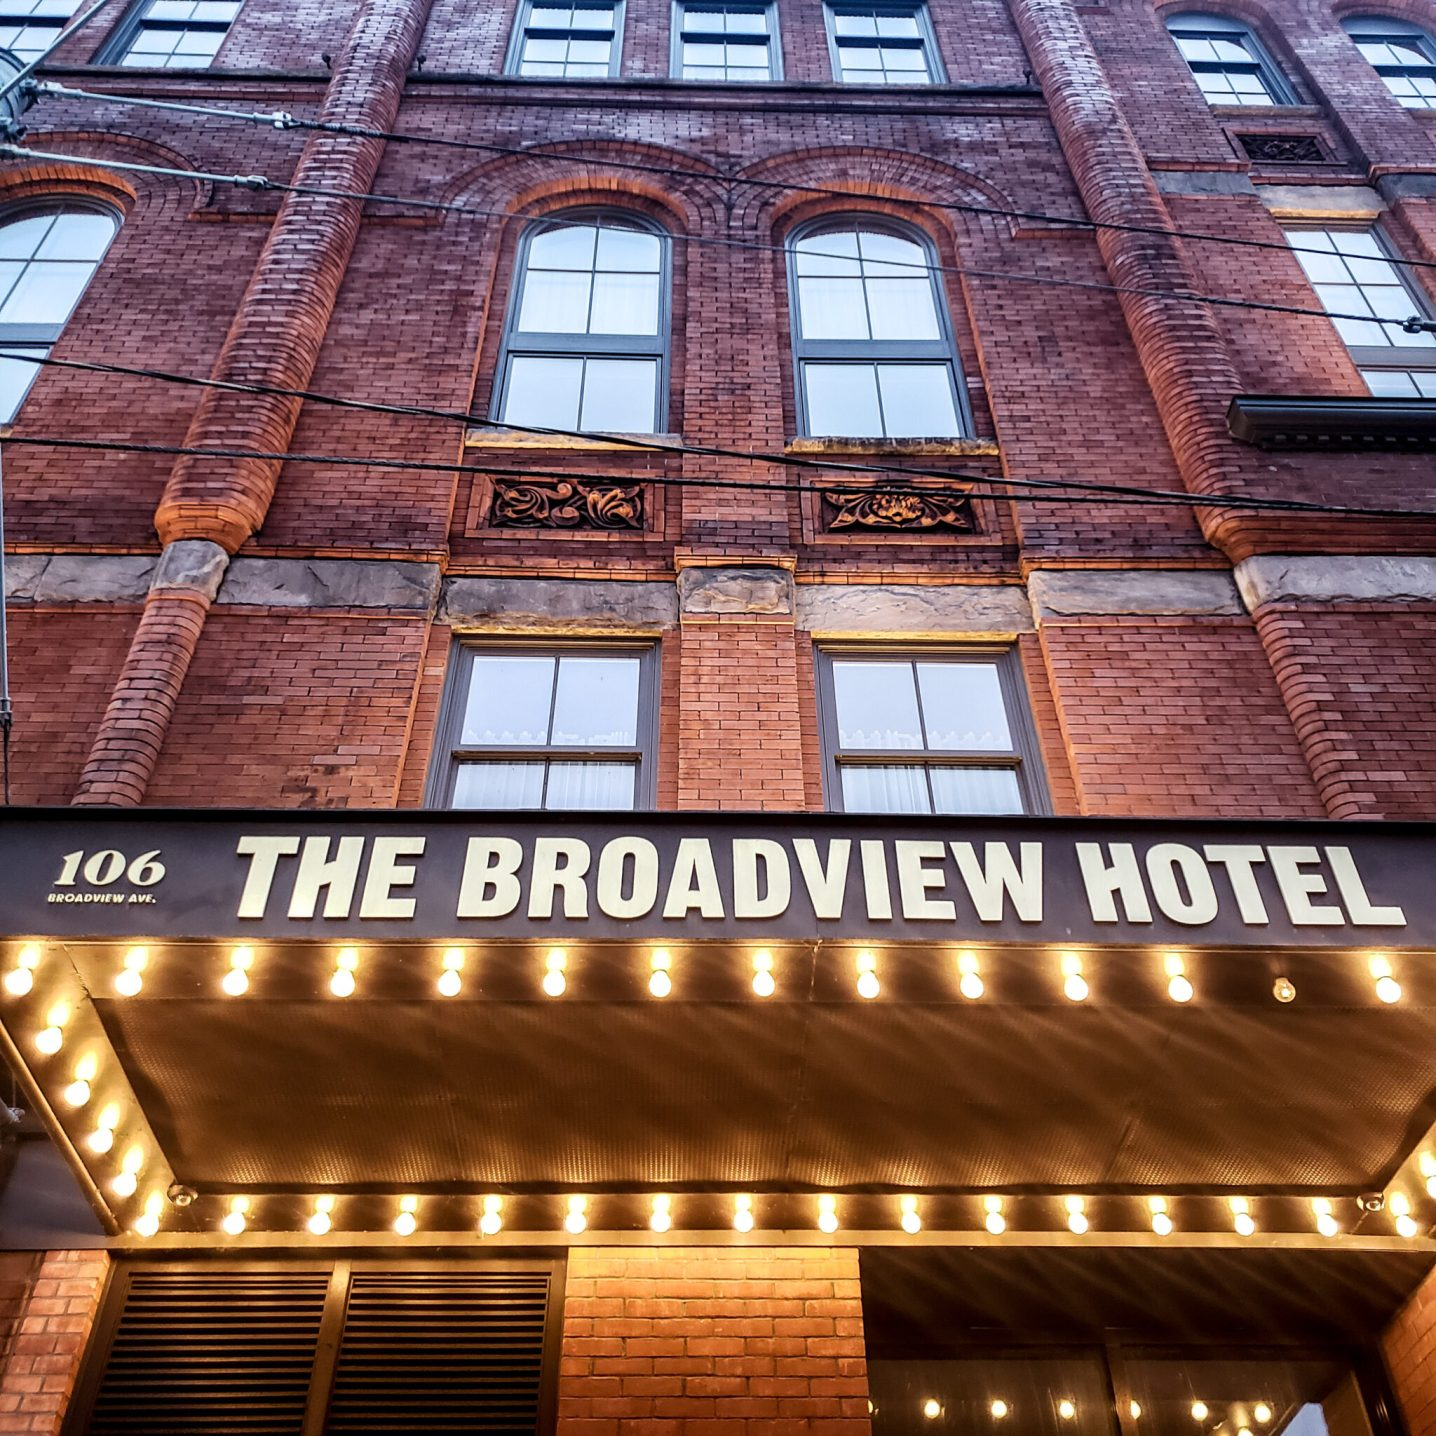 The Broadview Hotel - Broadview Hotel - Queen East - Toronto East - Toronto Life - Boutique Hotel - Facade